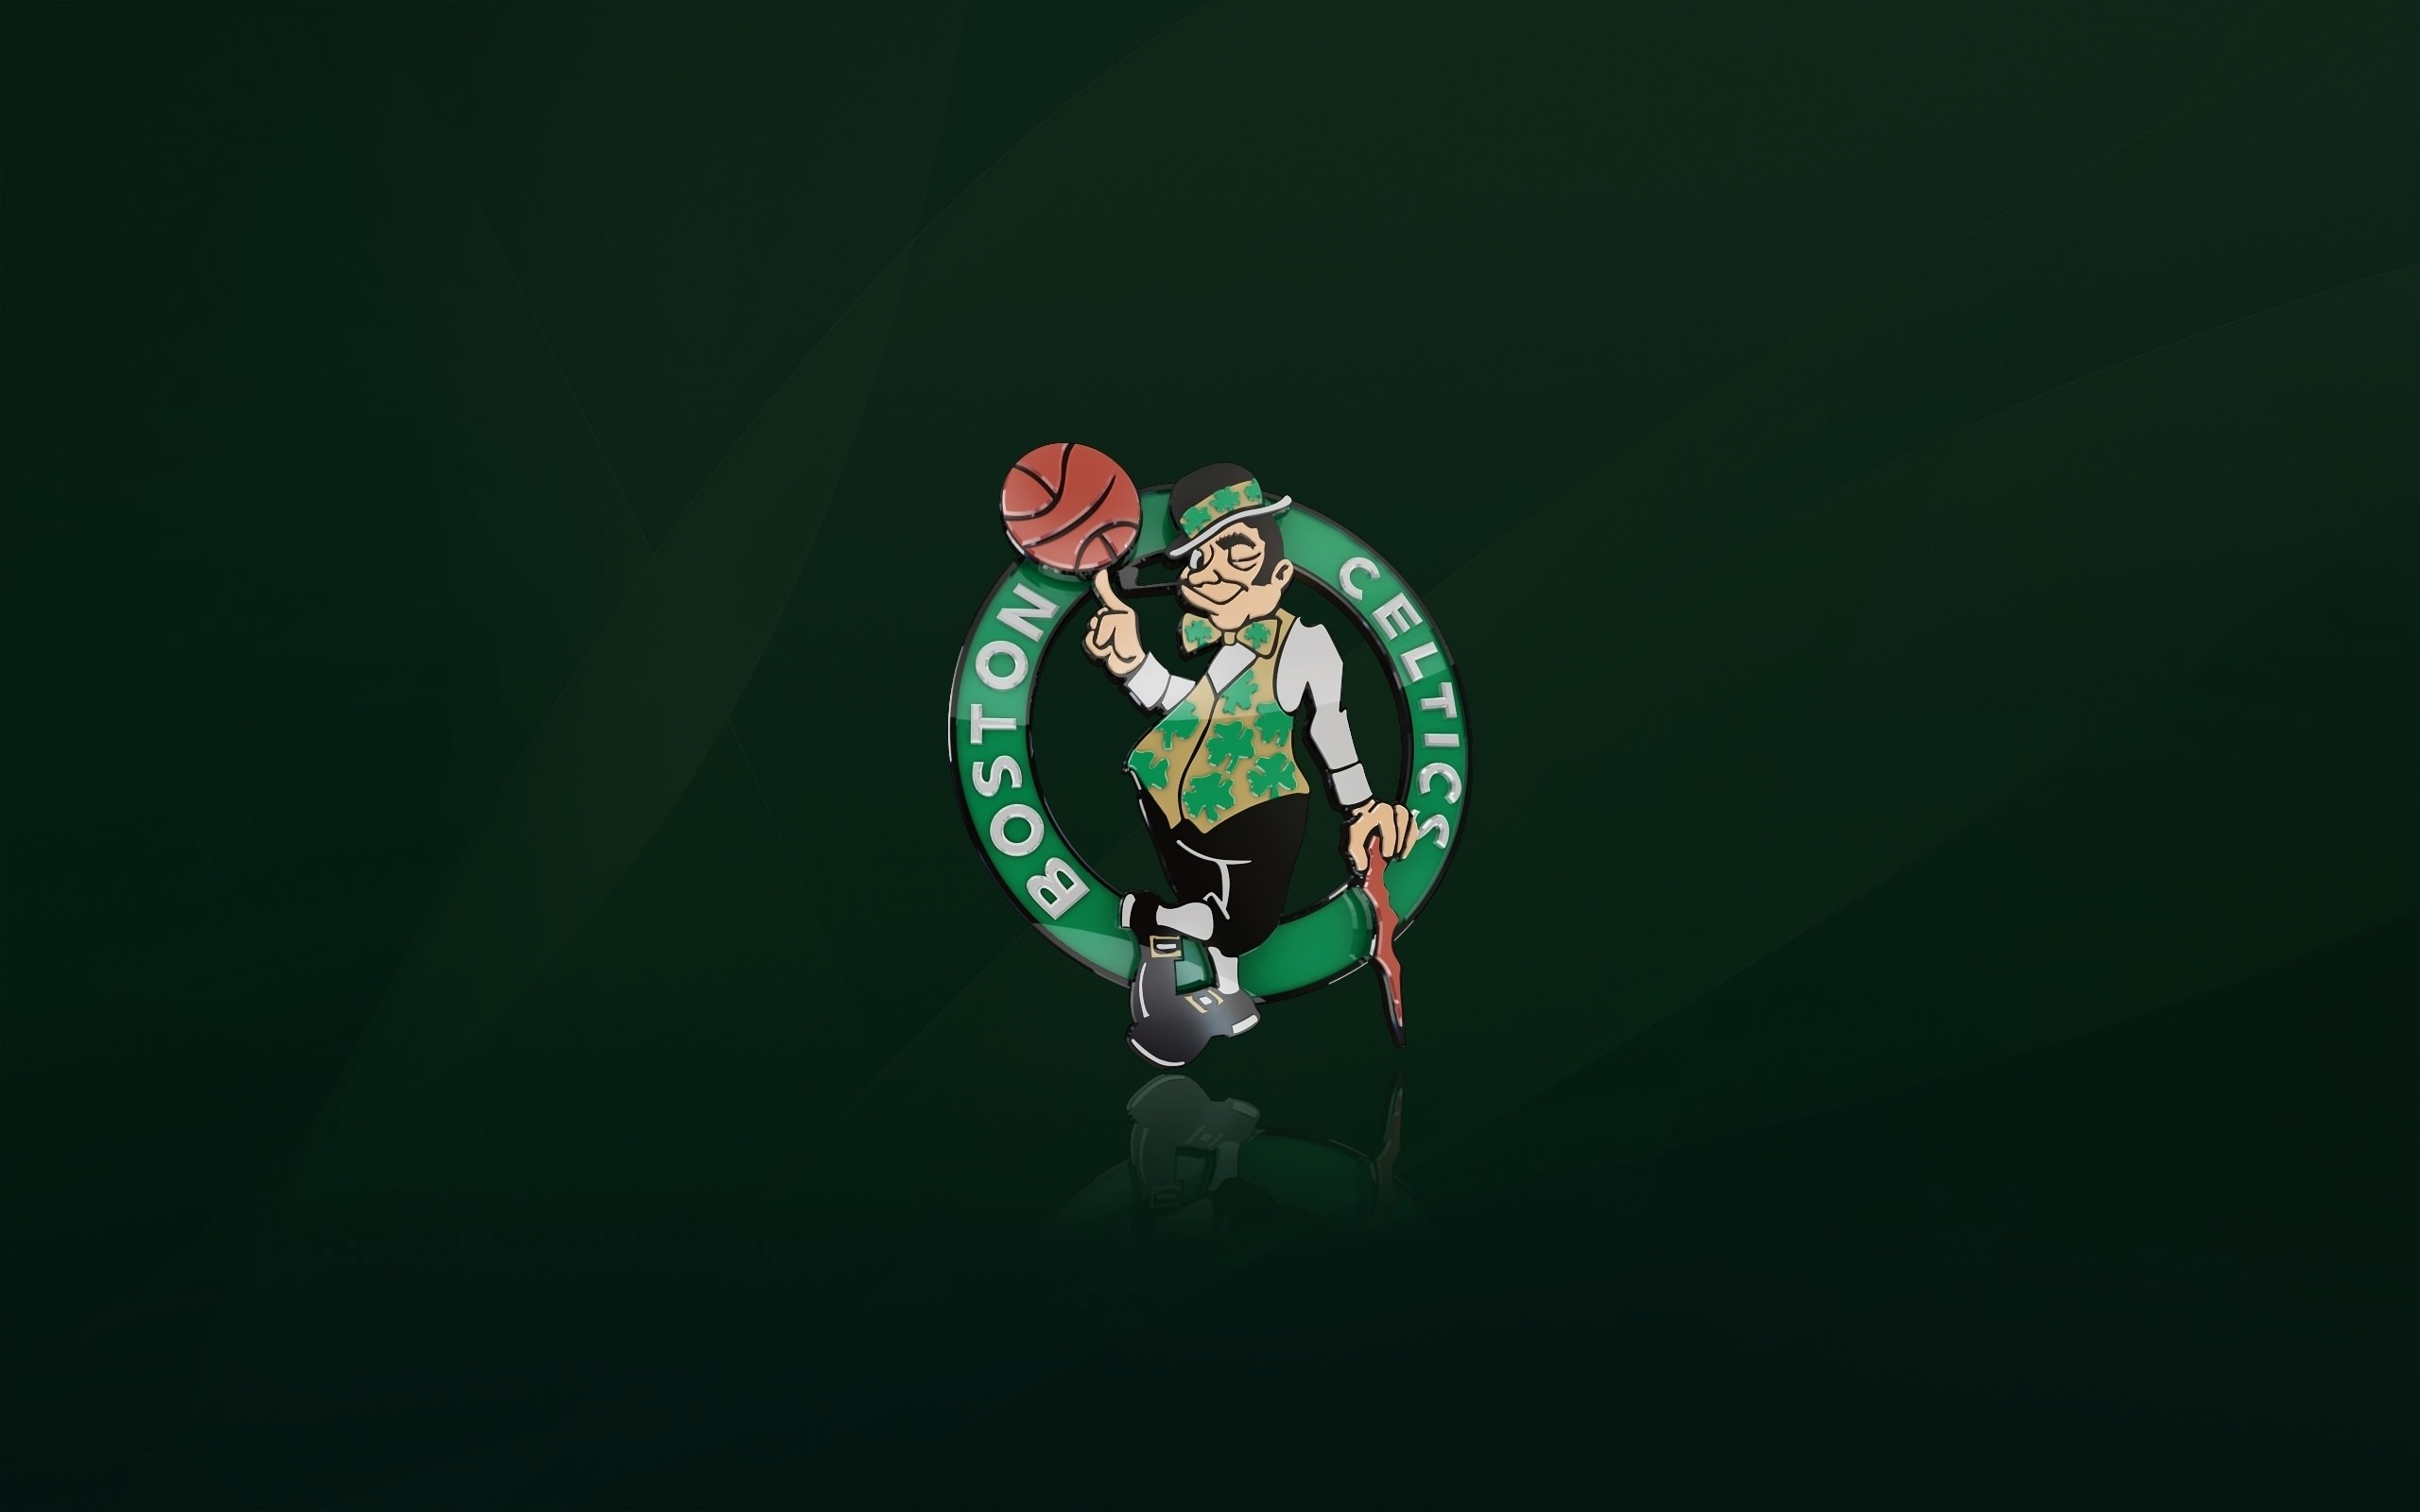 Boston celtics wallpapers high resolution and quality download - Free boston celtics wallpaper ...